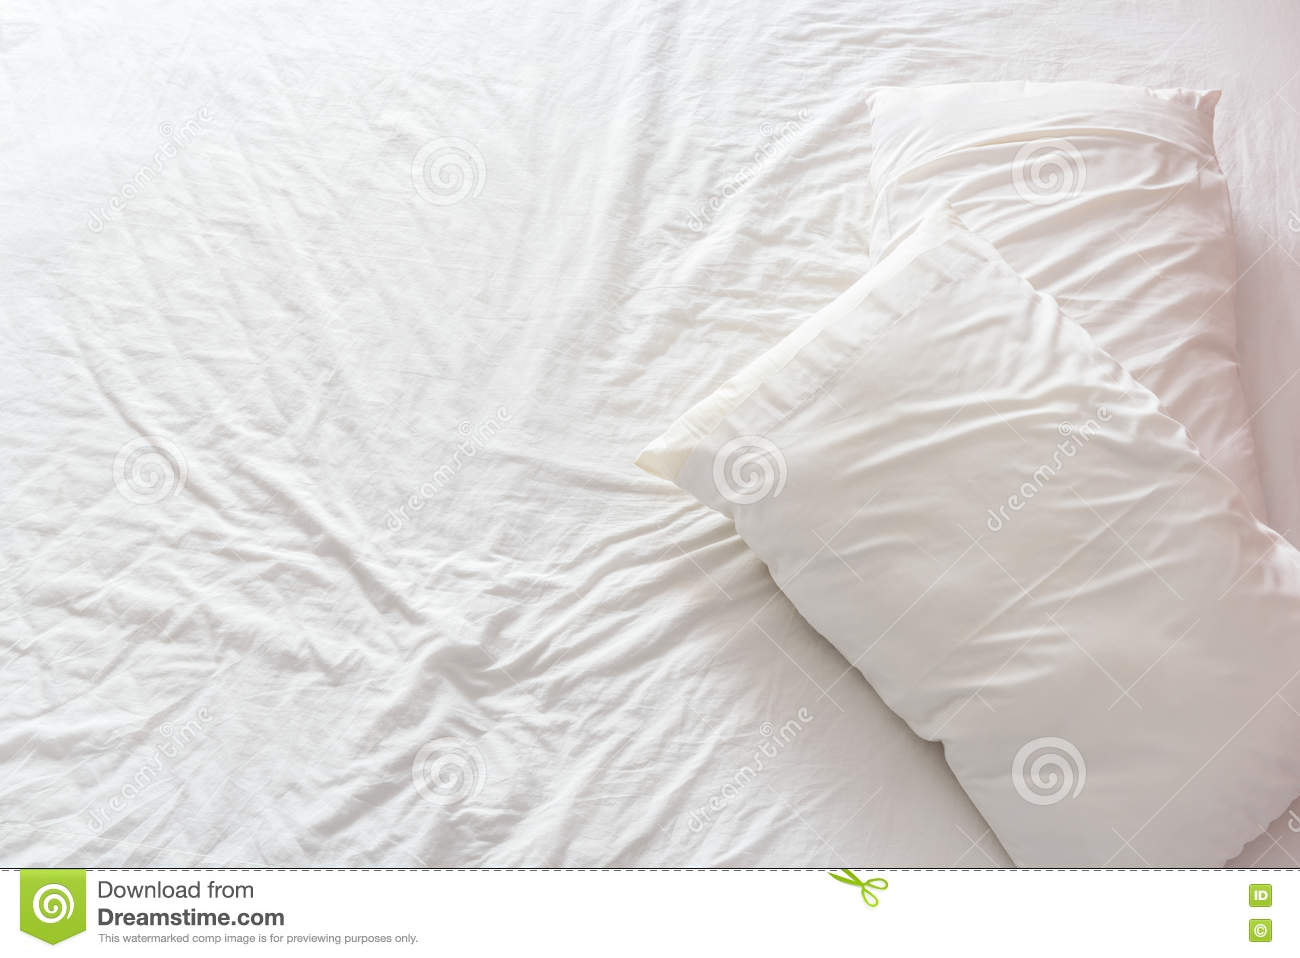 Rumpled bed sheet - Top View Of An Untidy Unmade Bed With White Crumpled Bed Sheet And Two Messy